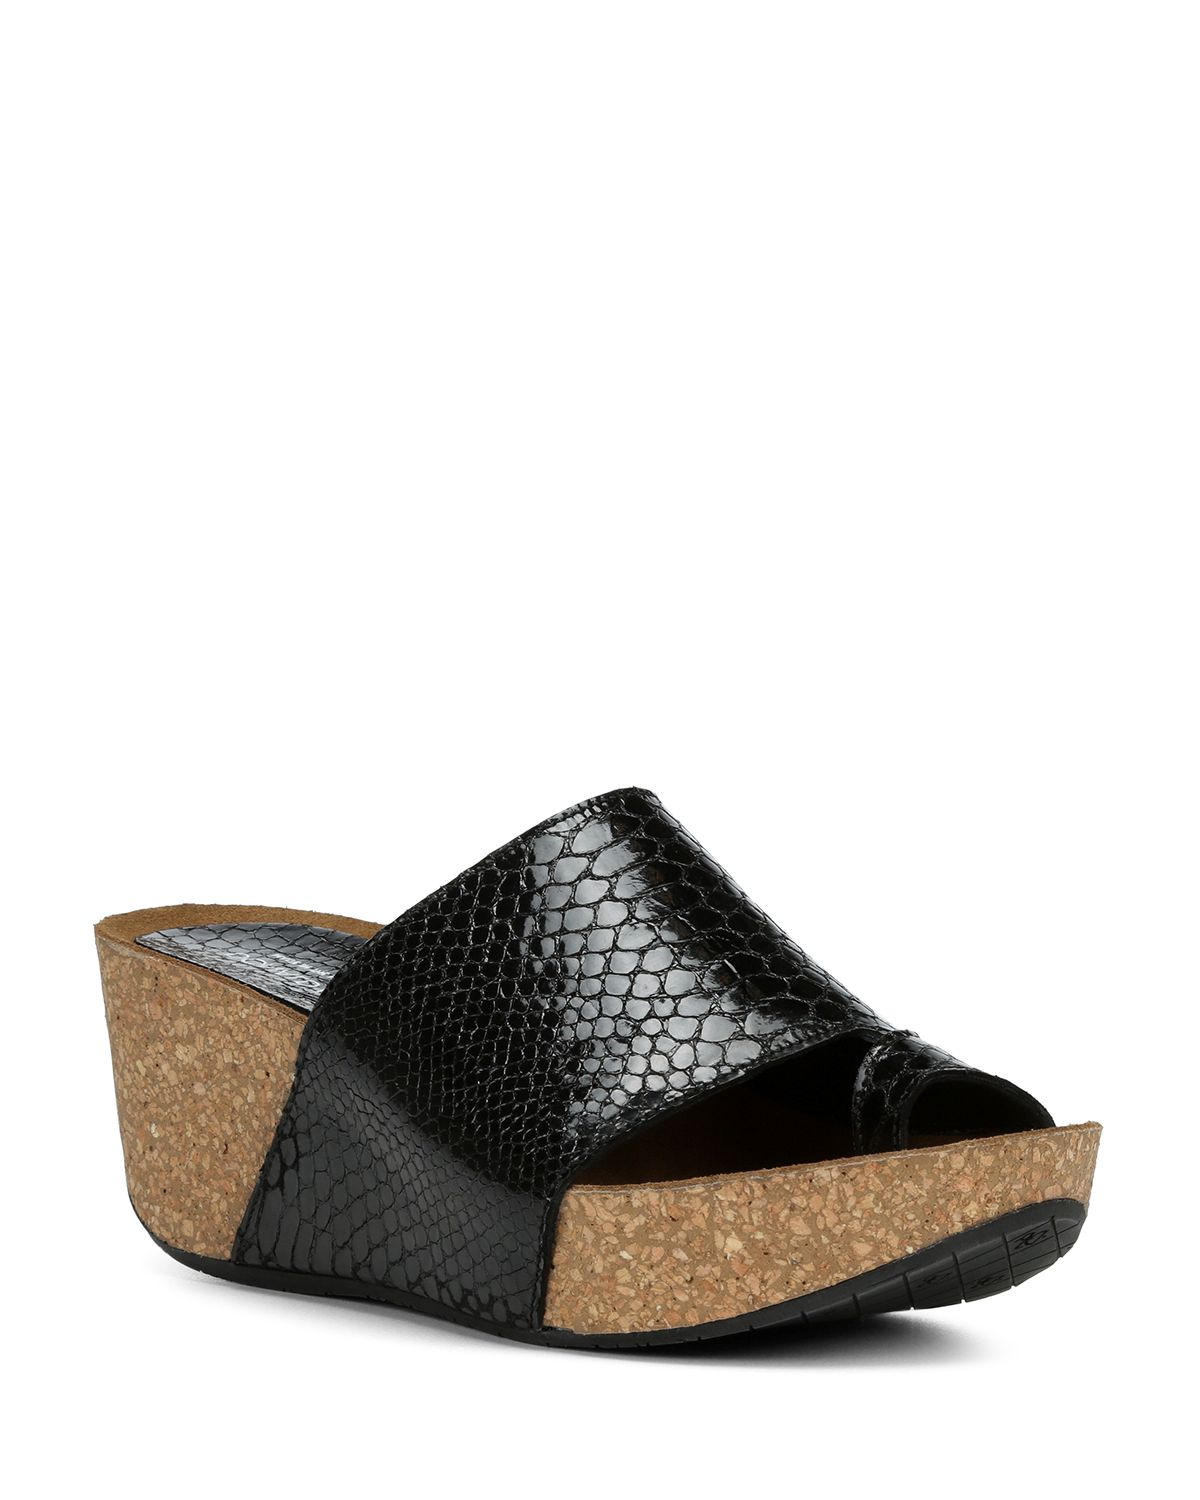 Donald Pliner Women's Ginie Embossed Leather Platform Wedge Sandals